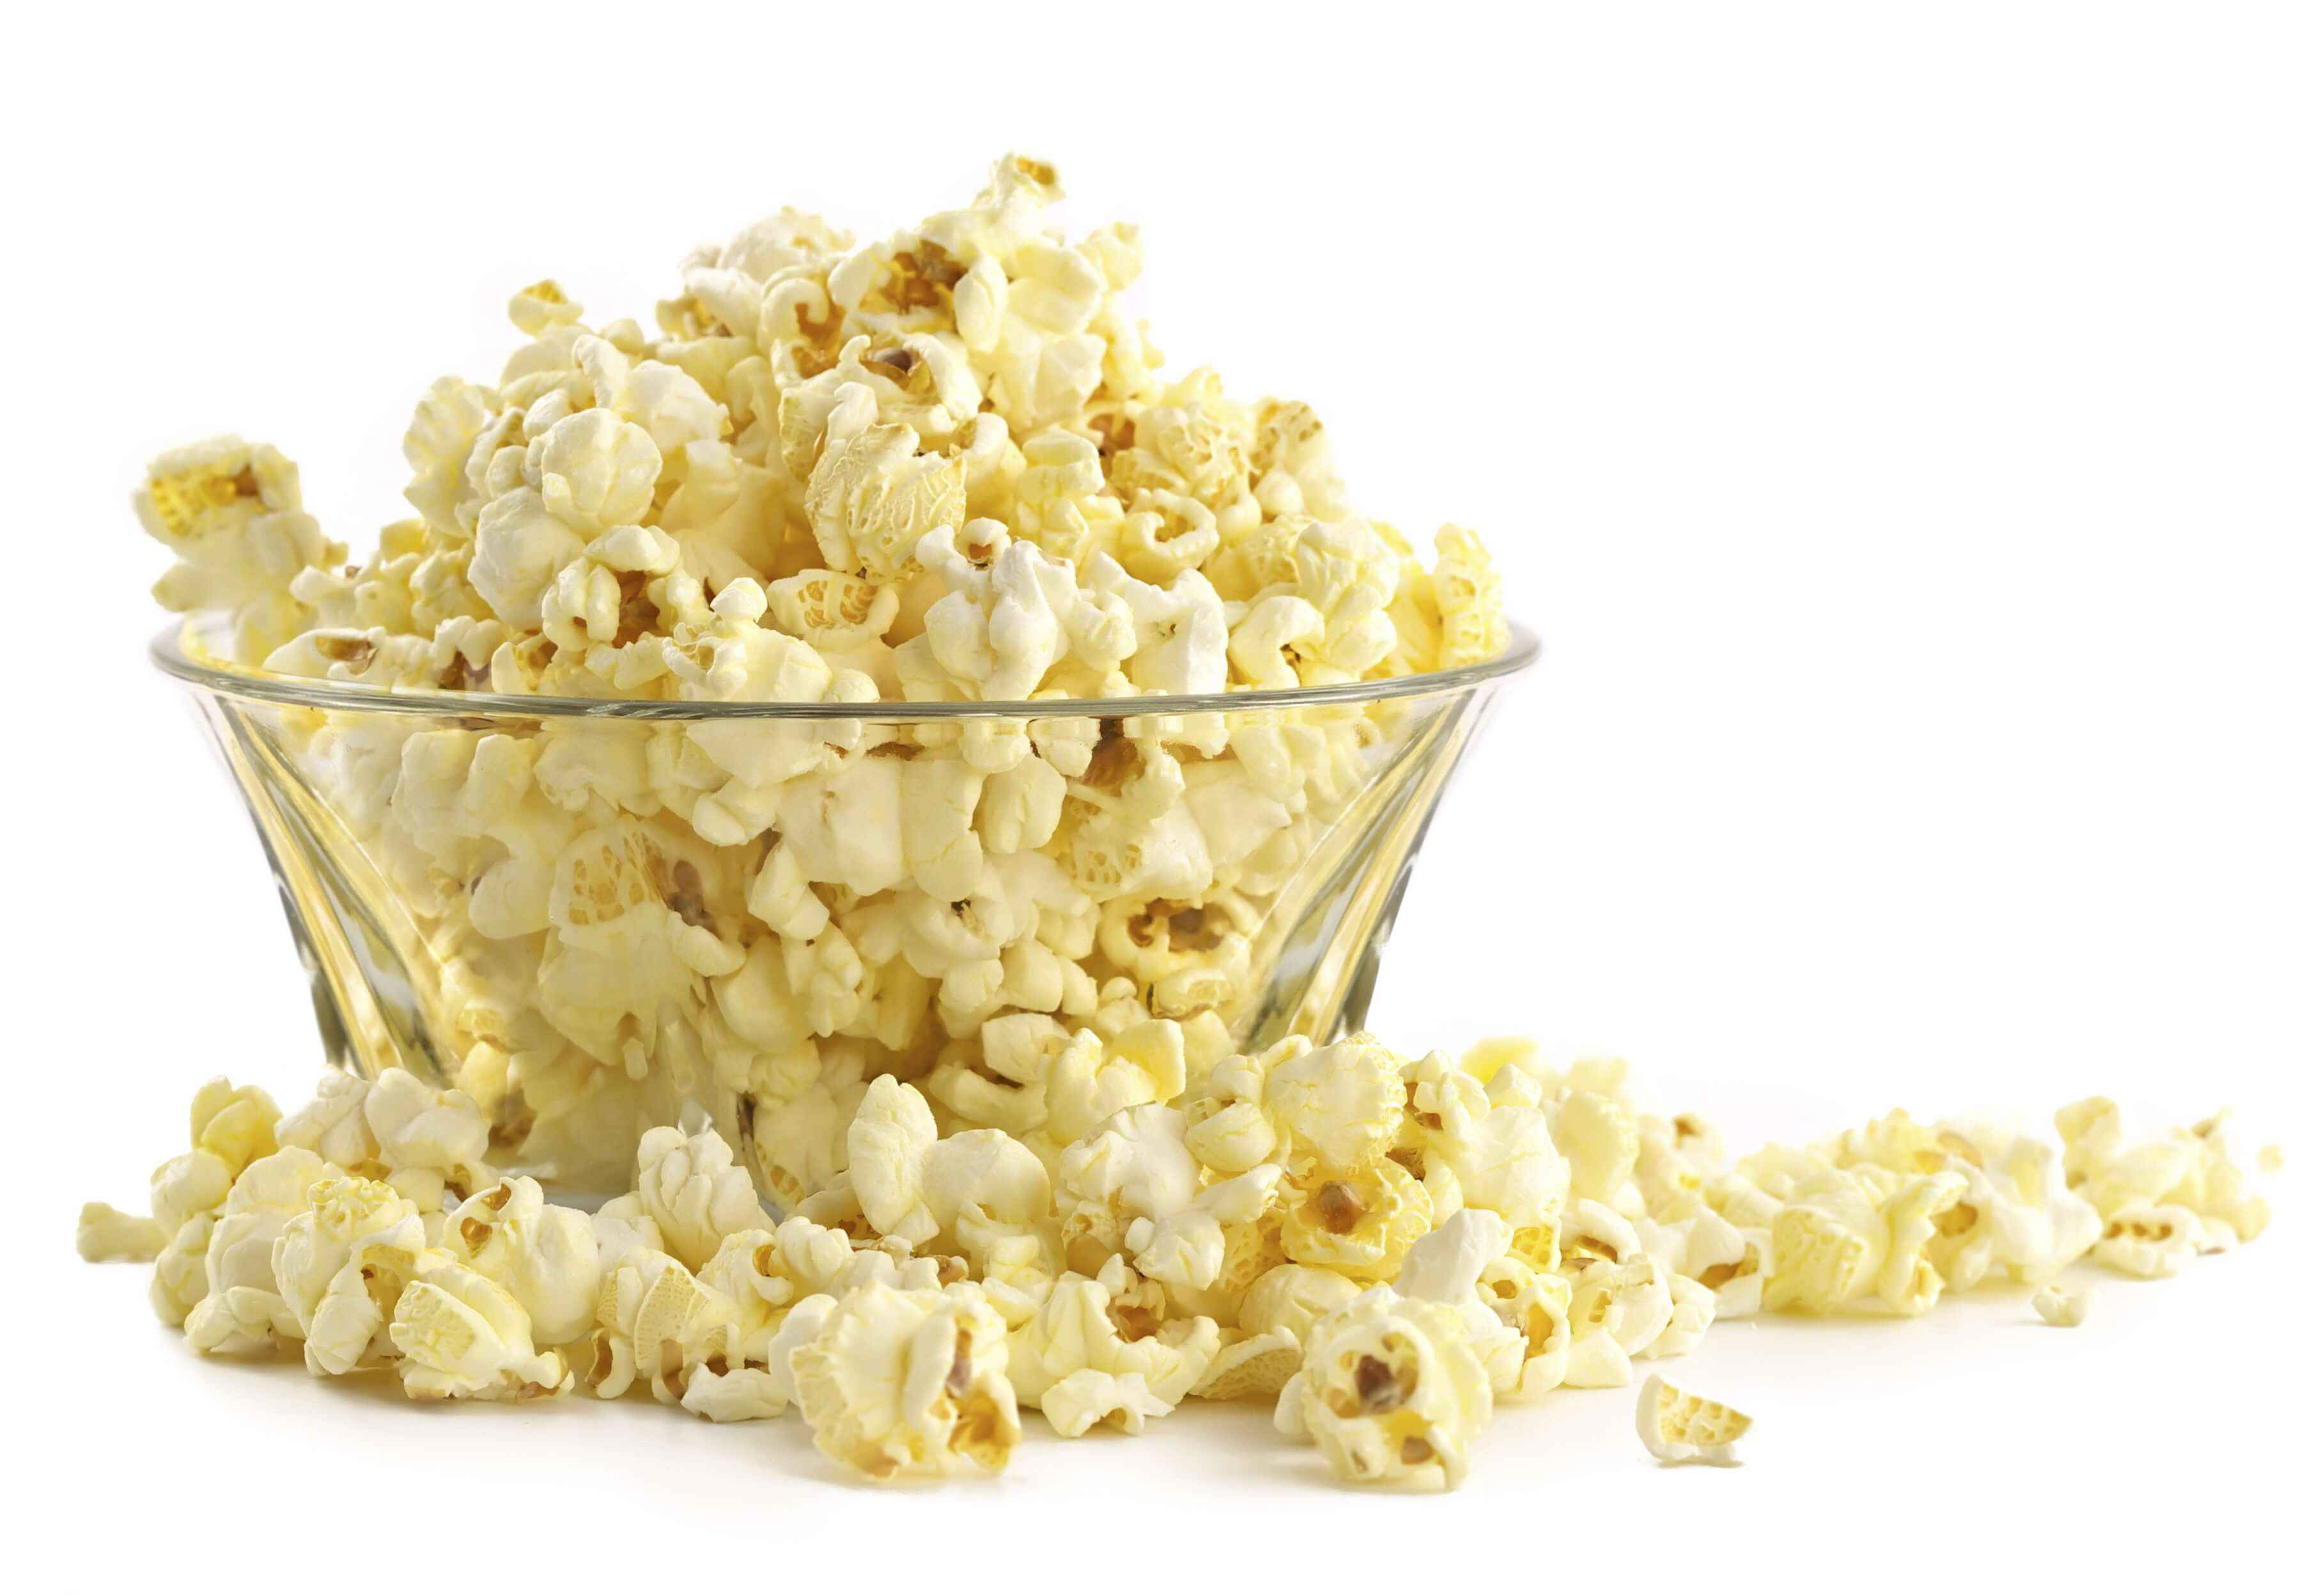 Popcorn without oil - Especially if you care about your health